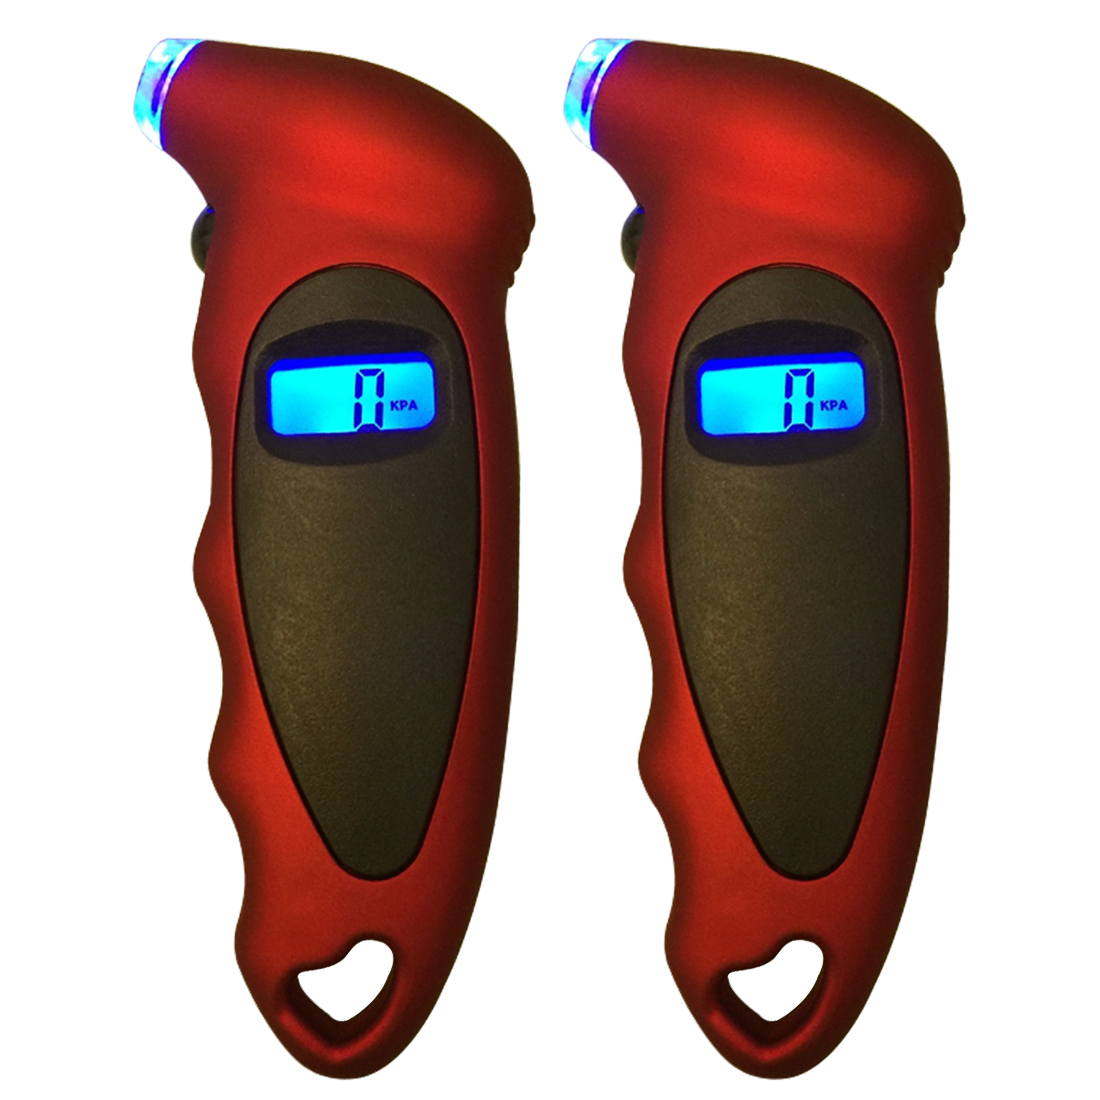 Car Digital Tire Pressure Gauge Tool Car Motorcycle Bike Mini Digital Tire Gauge Tire Diagnostic LCD Display 8 in 1 1 2 digital display tire pressure gauge black 3 x aaa battery